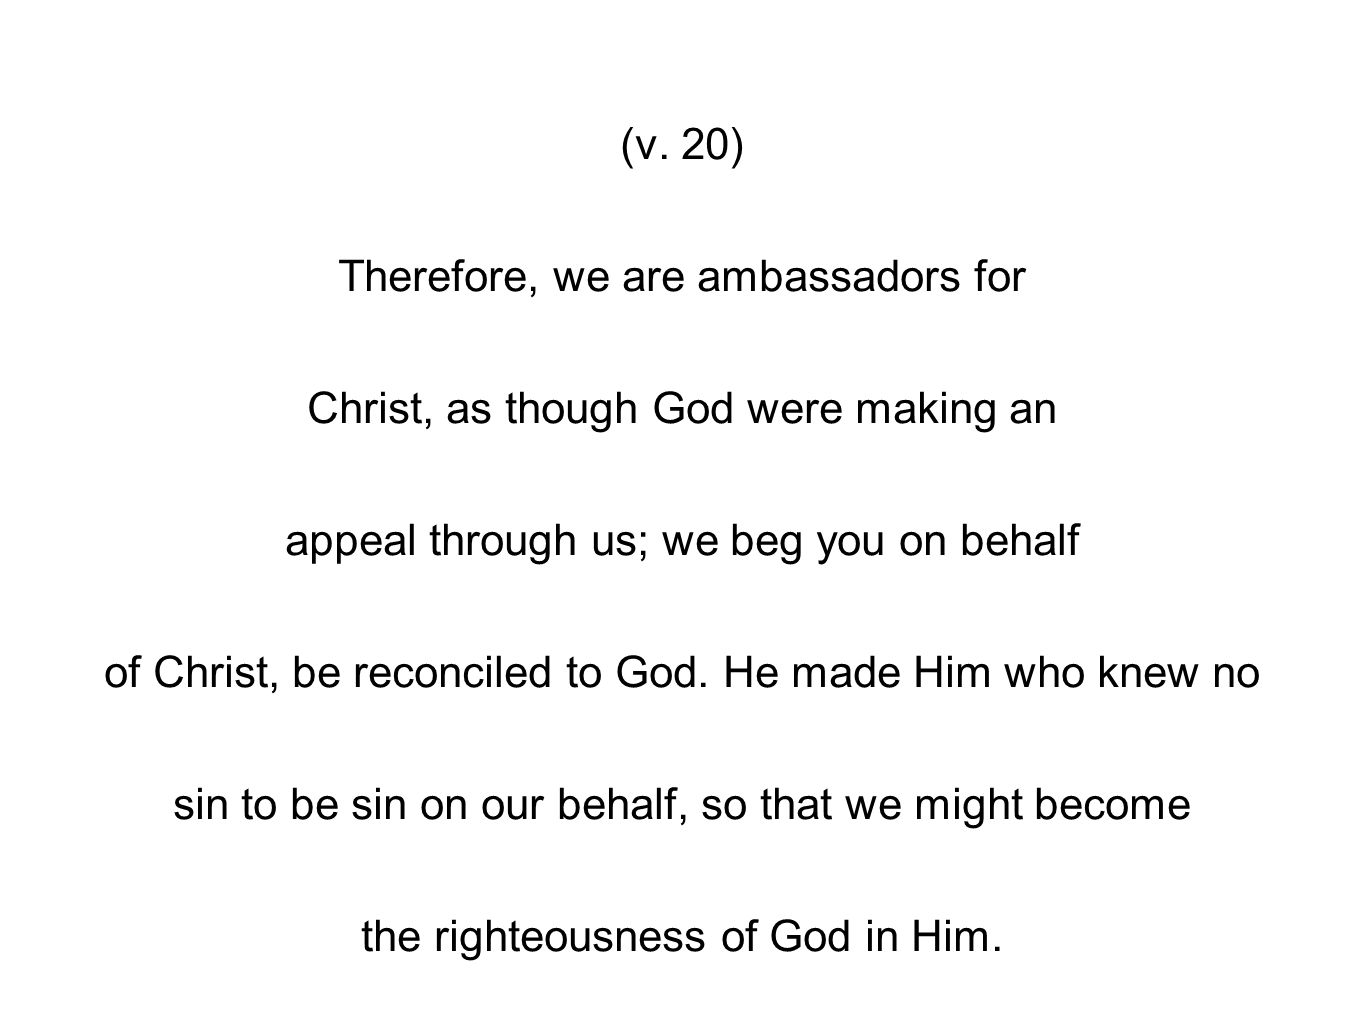 (v. 20) Therefore, we are ambassadors for Christ, as though God were making an appeal through us; we beg you on behalf of Christ, be reconciled to God